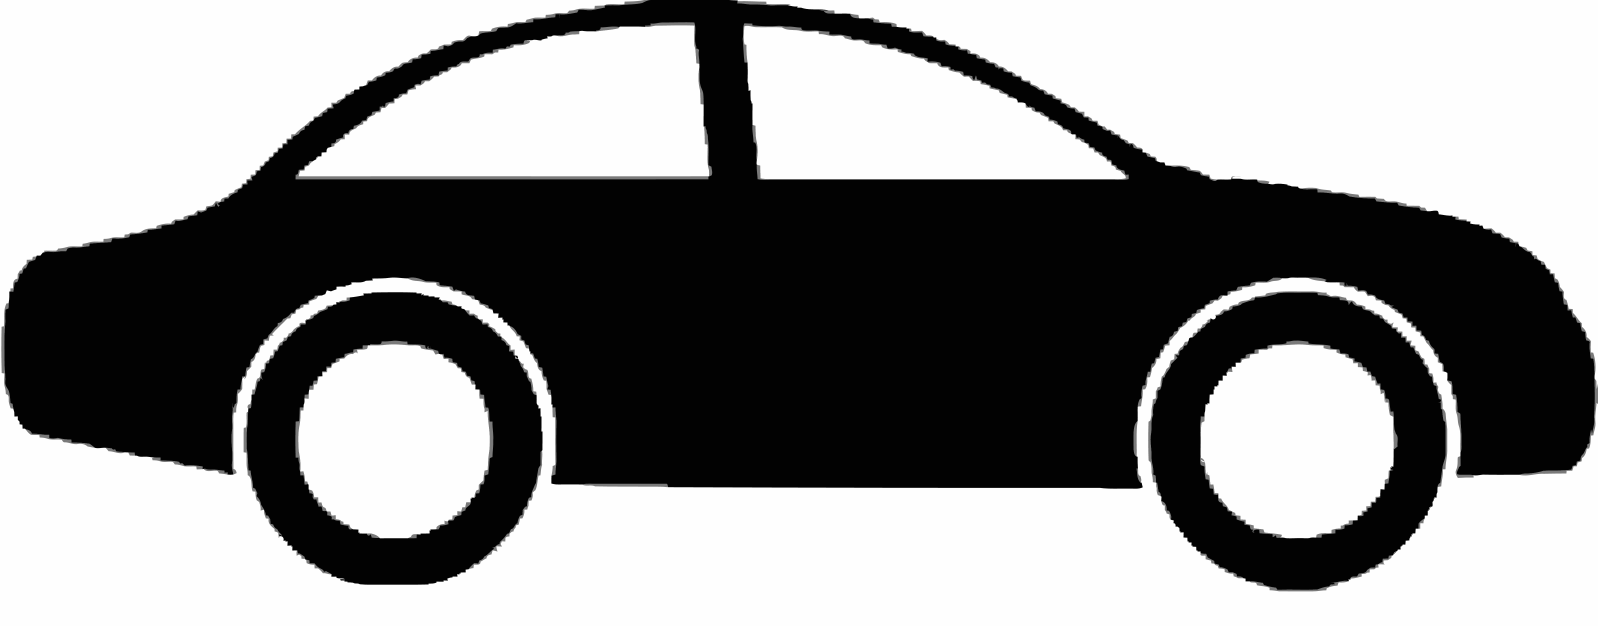 Silhouette at getdrawings com. Clipart car